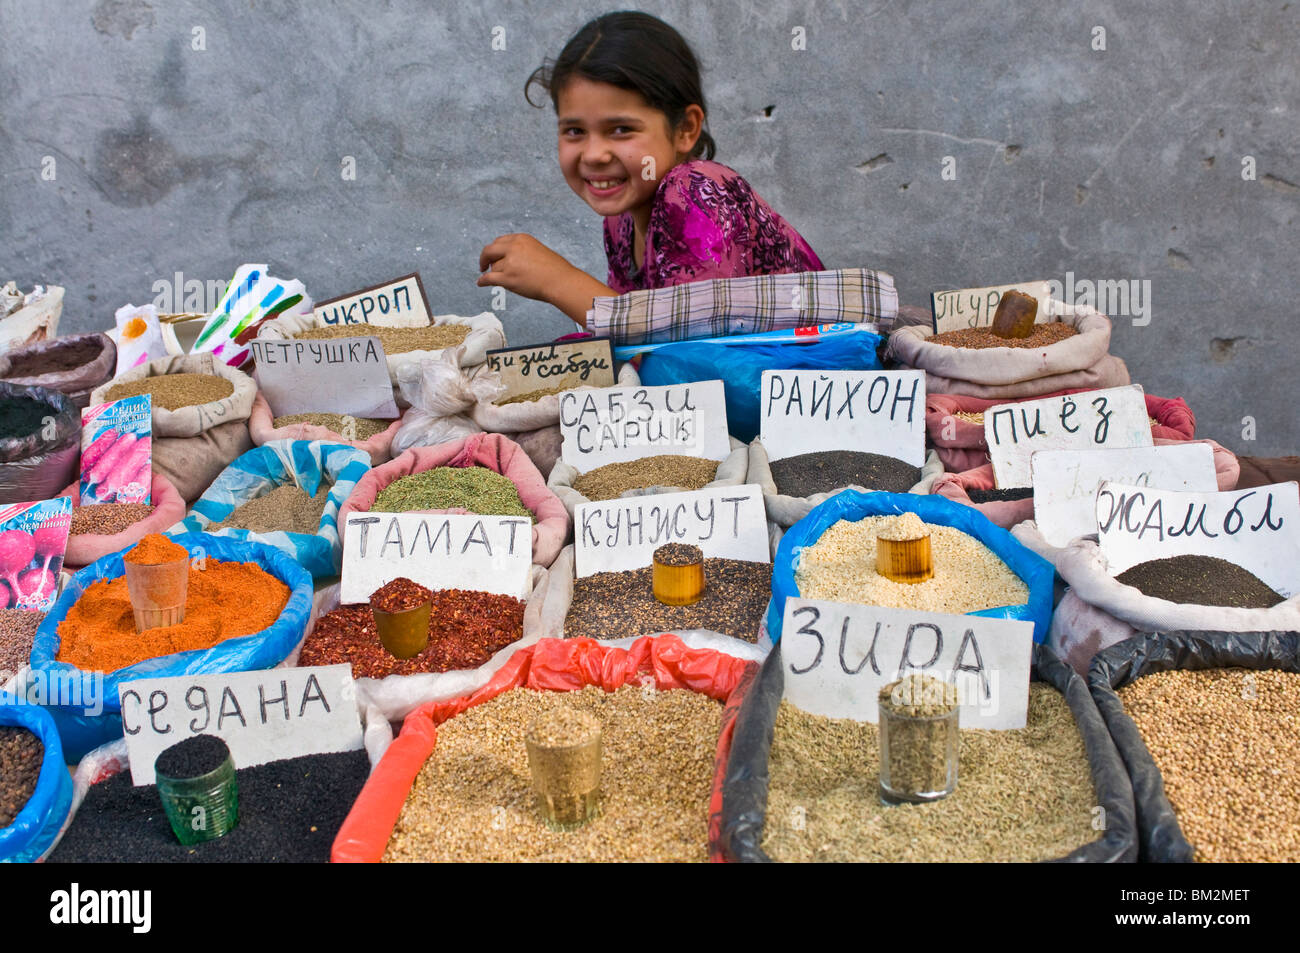 Spices at market stall, Osh, Kyrgyzstan - Stock Image